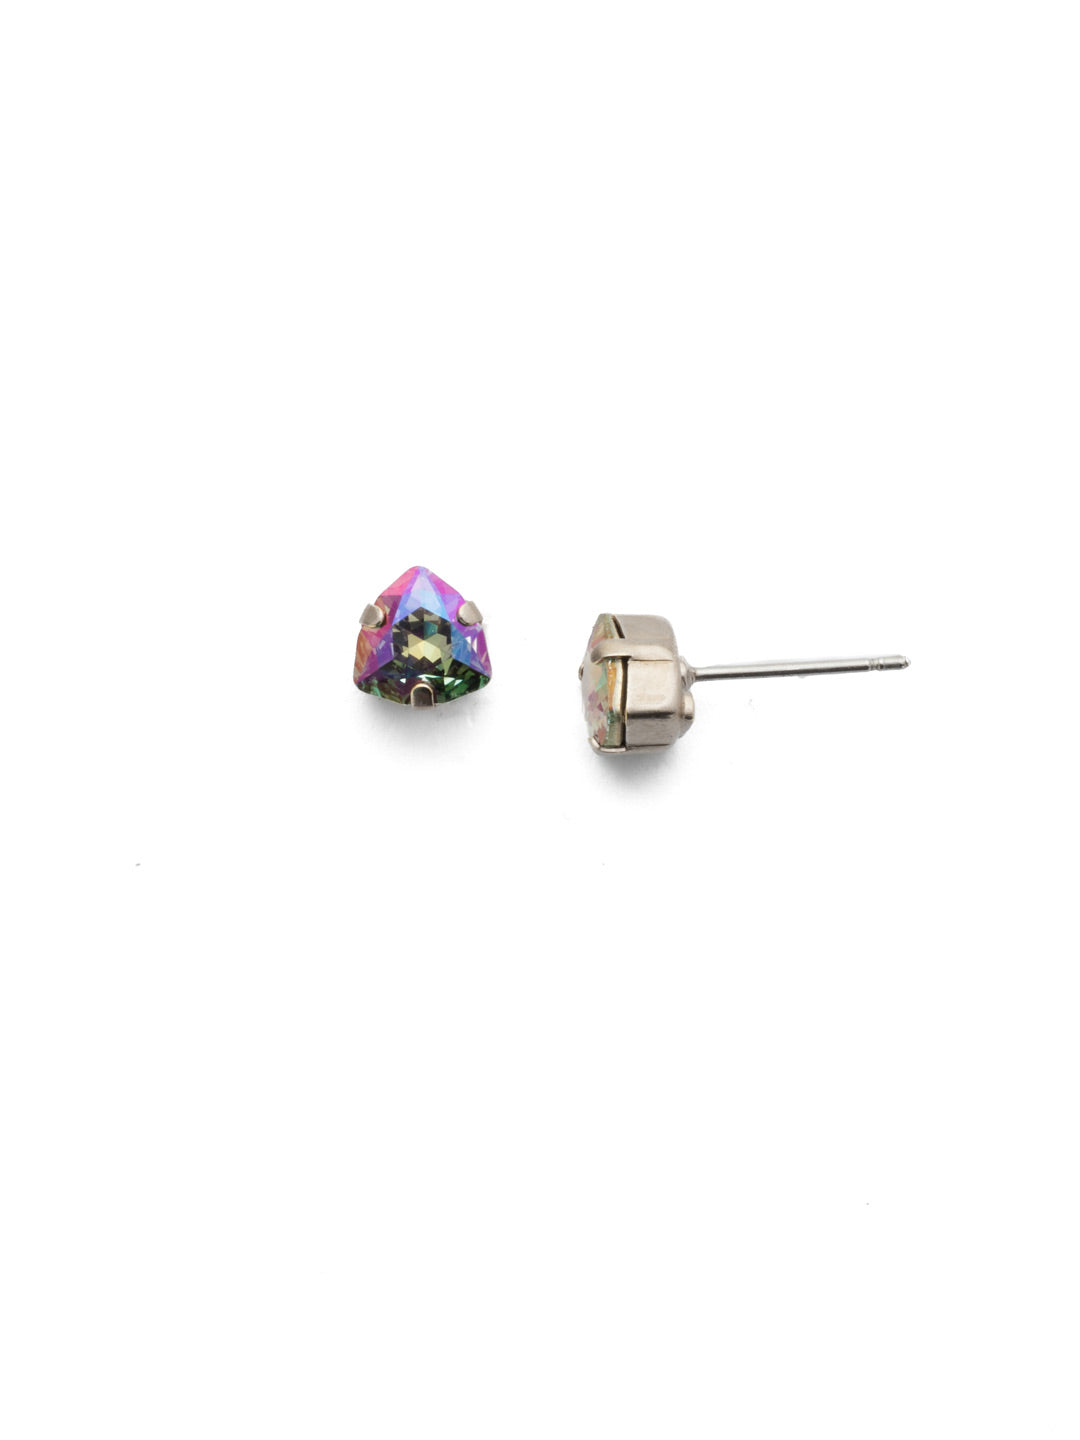 Sedge Stud Earrings - EDX1ASCRE